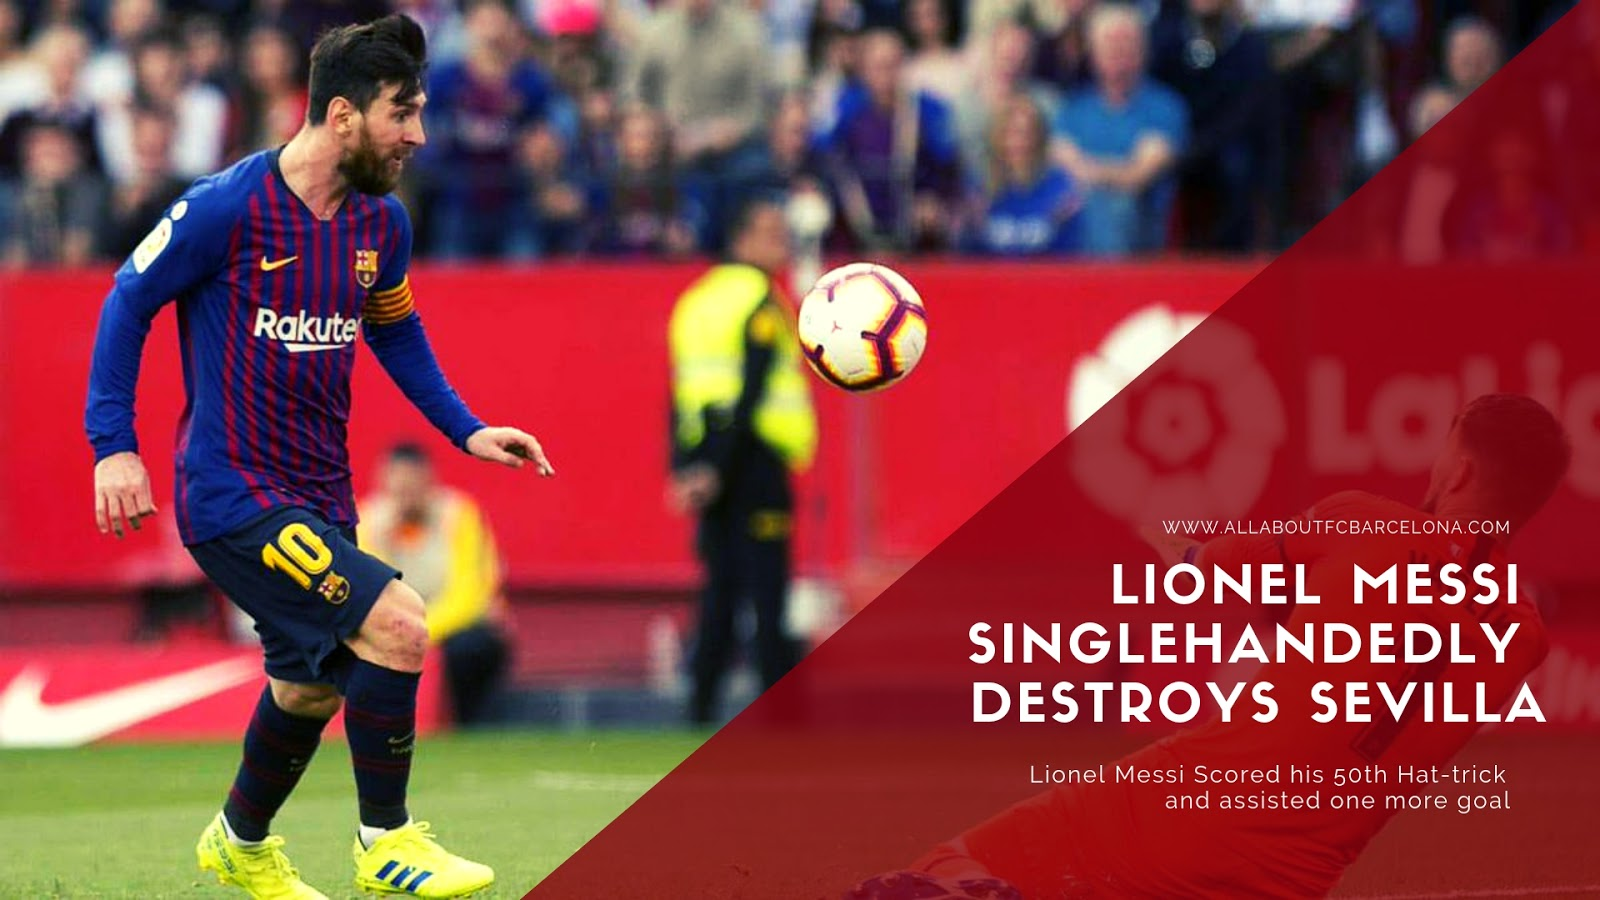 MESSI saves BARCELONA with an Out of the World Performance #Barca #Messi #BarcaSevilla